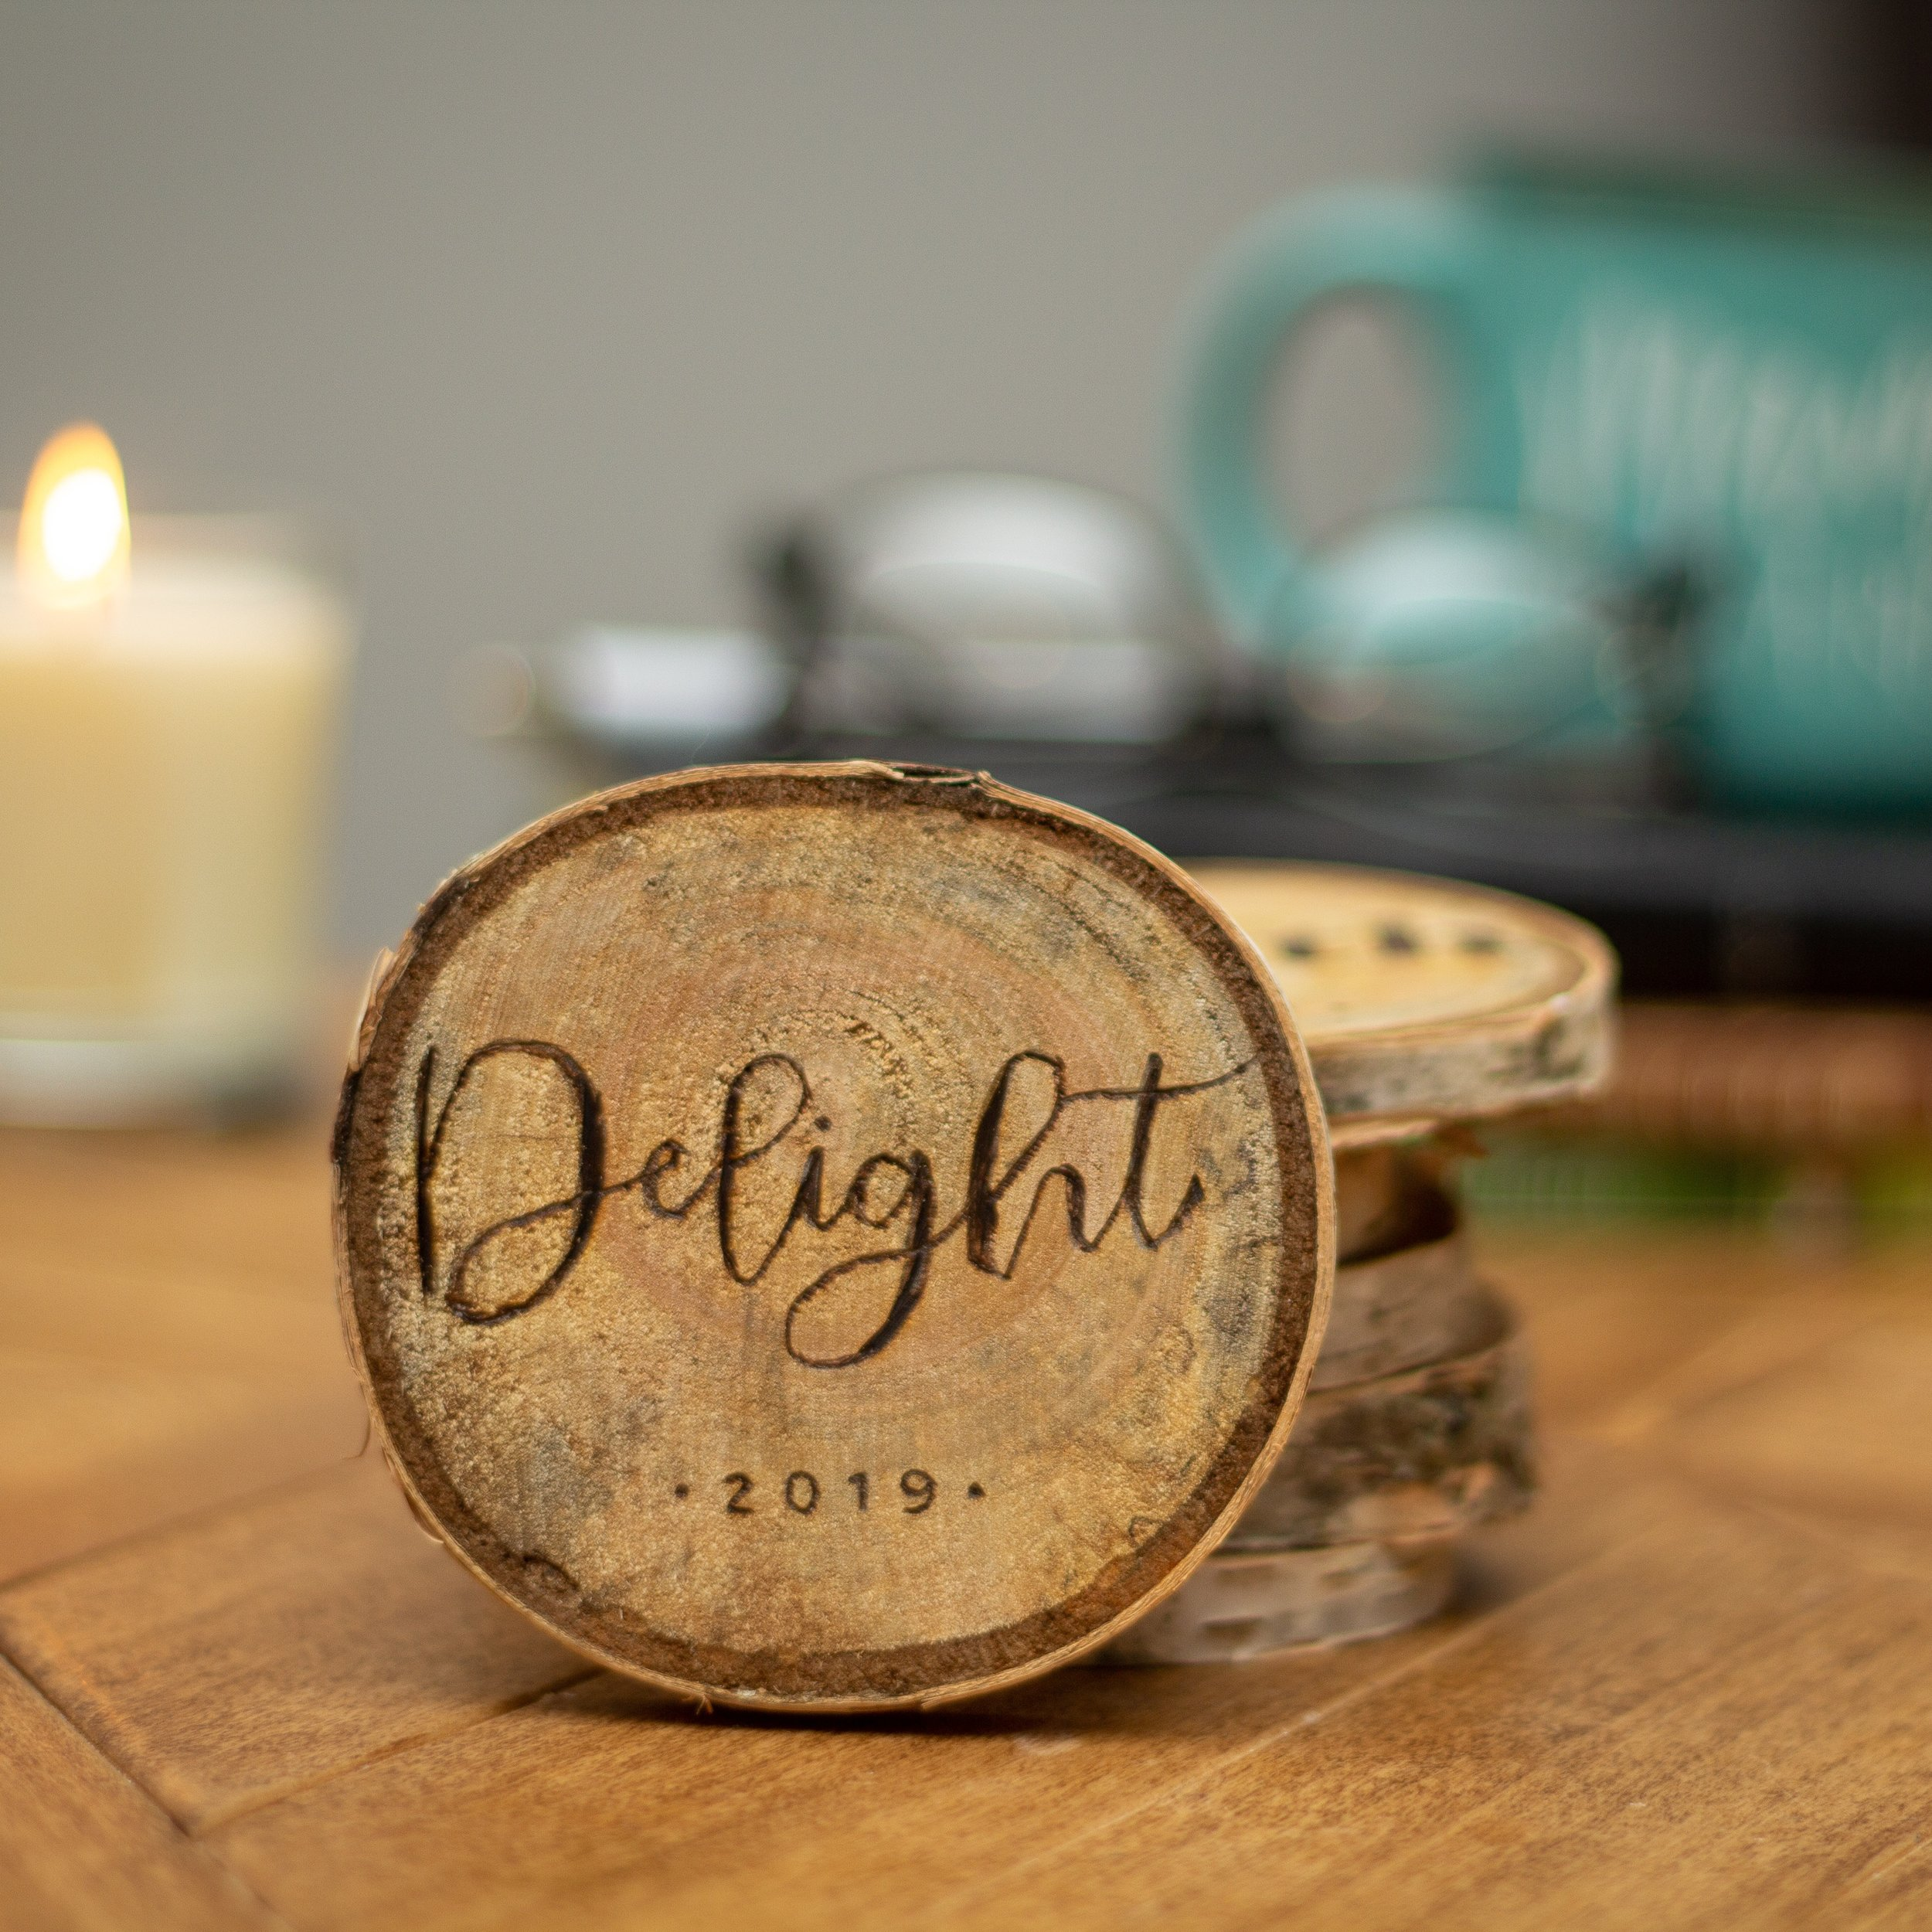 Hand-crafted wood burned inspirational round to keep you on track for 2019. Achieve your New Years resolutions with this cute daily reminder!